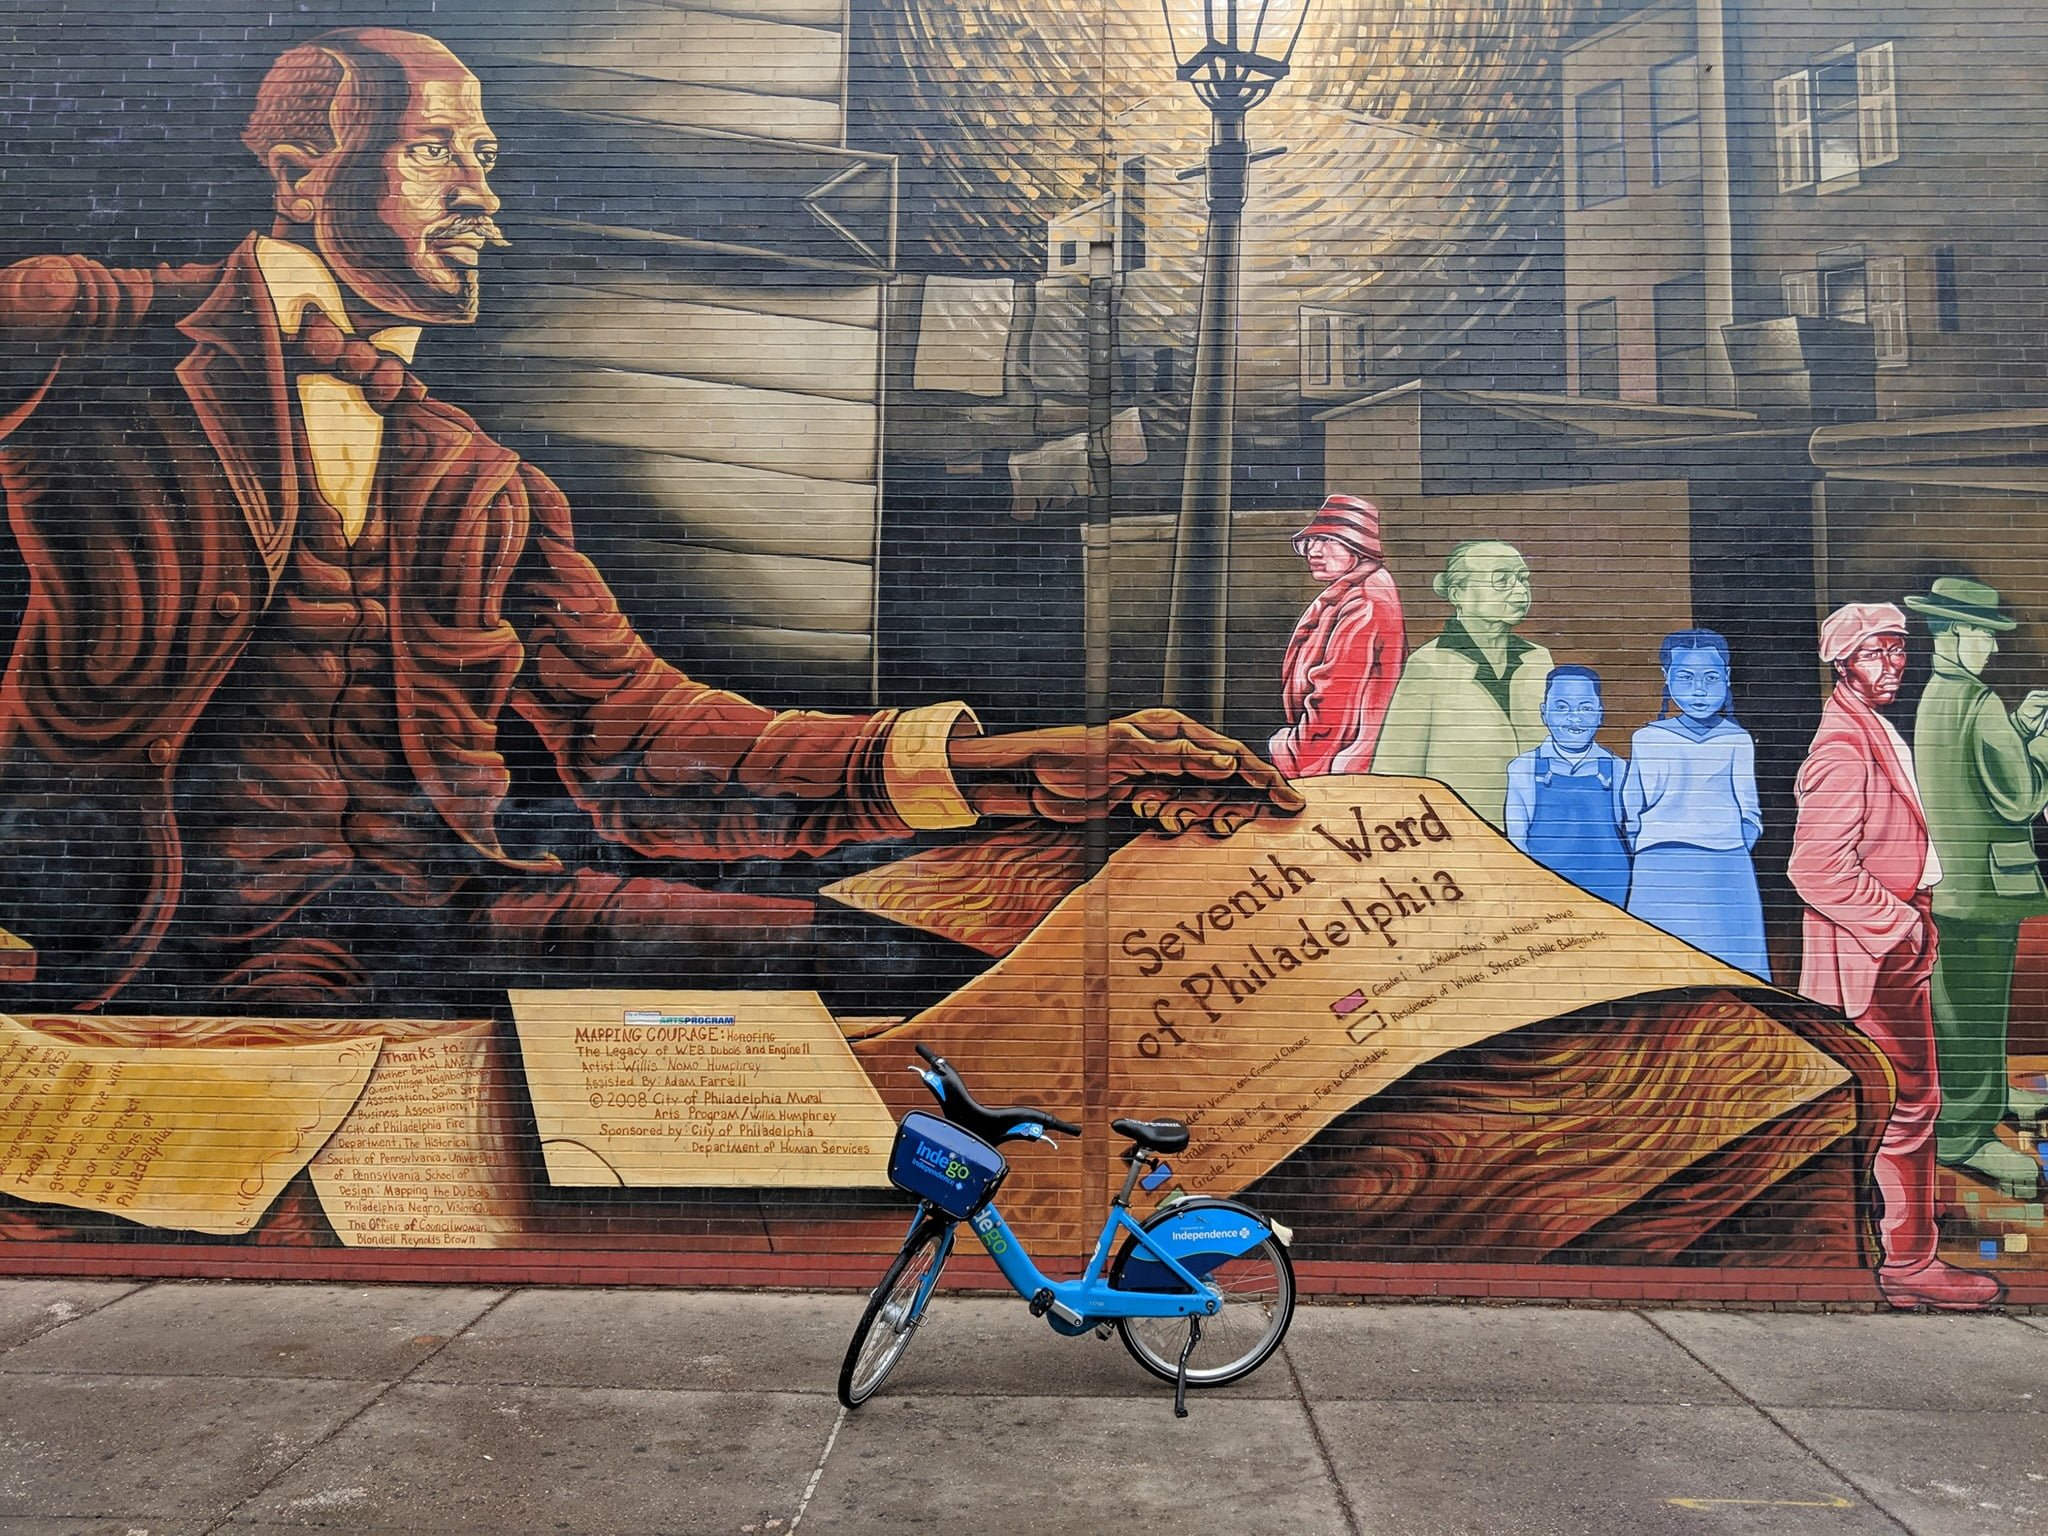 Indego bike in front of mural